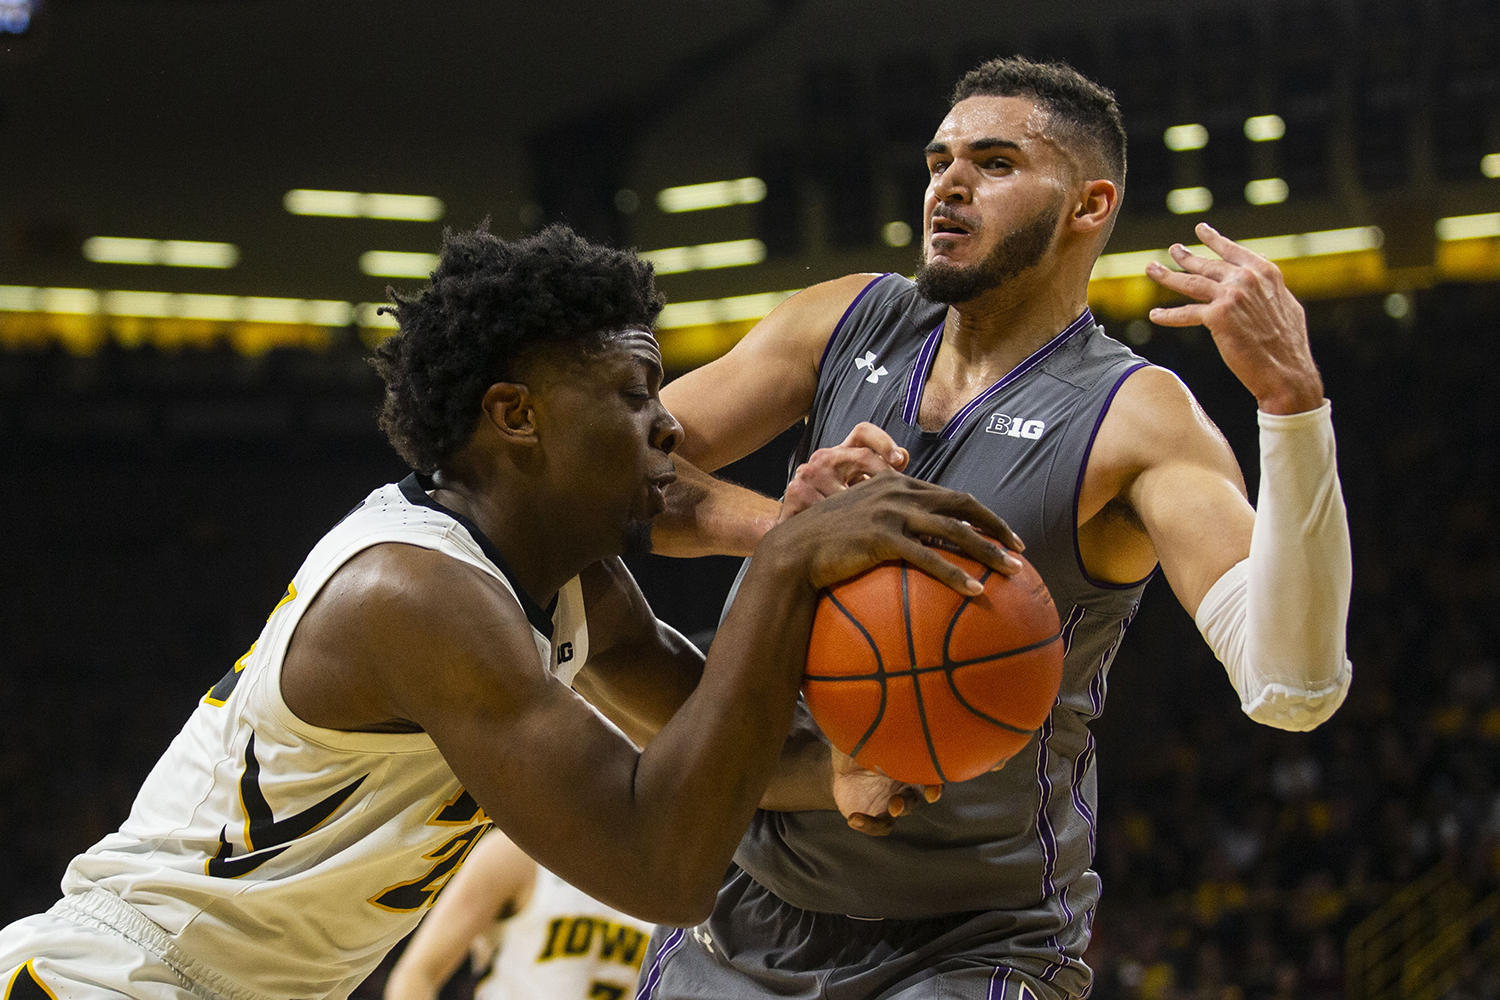 Iowa+forward+Tyler+Cook+attempts+to+gain+control+of+the+ball+during+the+Iowa%2FNorthwestern+men%27s+basketball+game+at+Carver-Hawkeye+Arena+on+Sunday%2C+February+10%2C+2019.+The+Hawkeyes+defeated+the+Wildcats%2C+80-79.